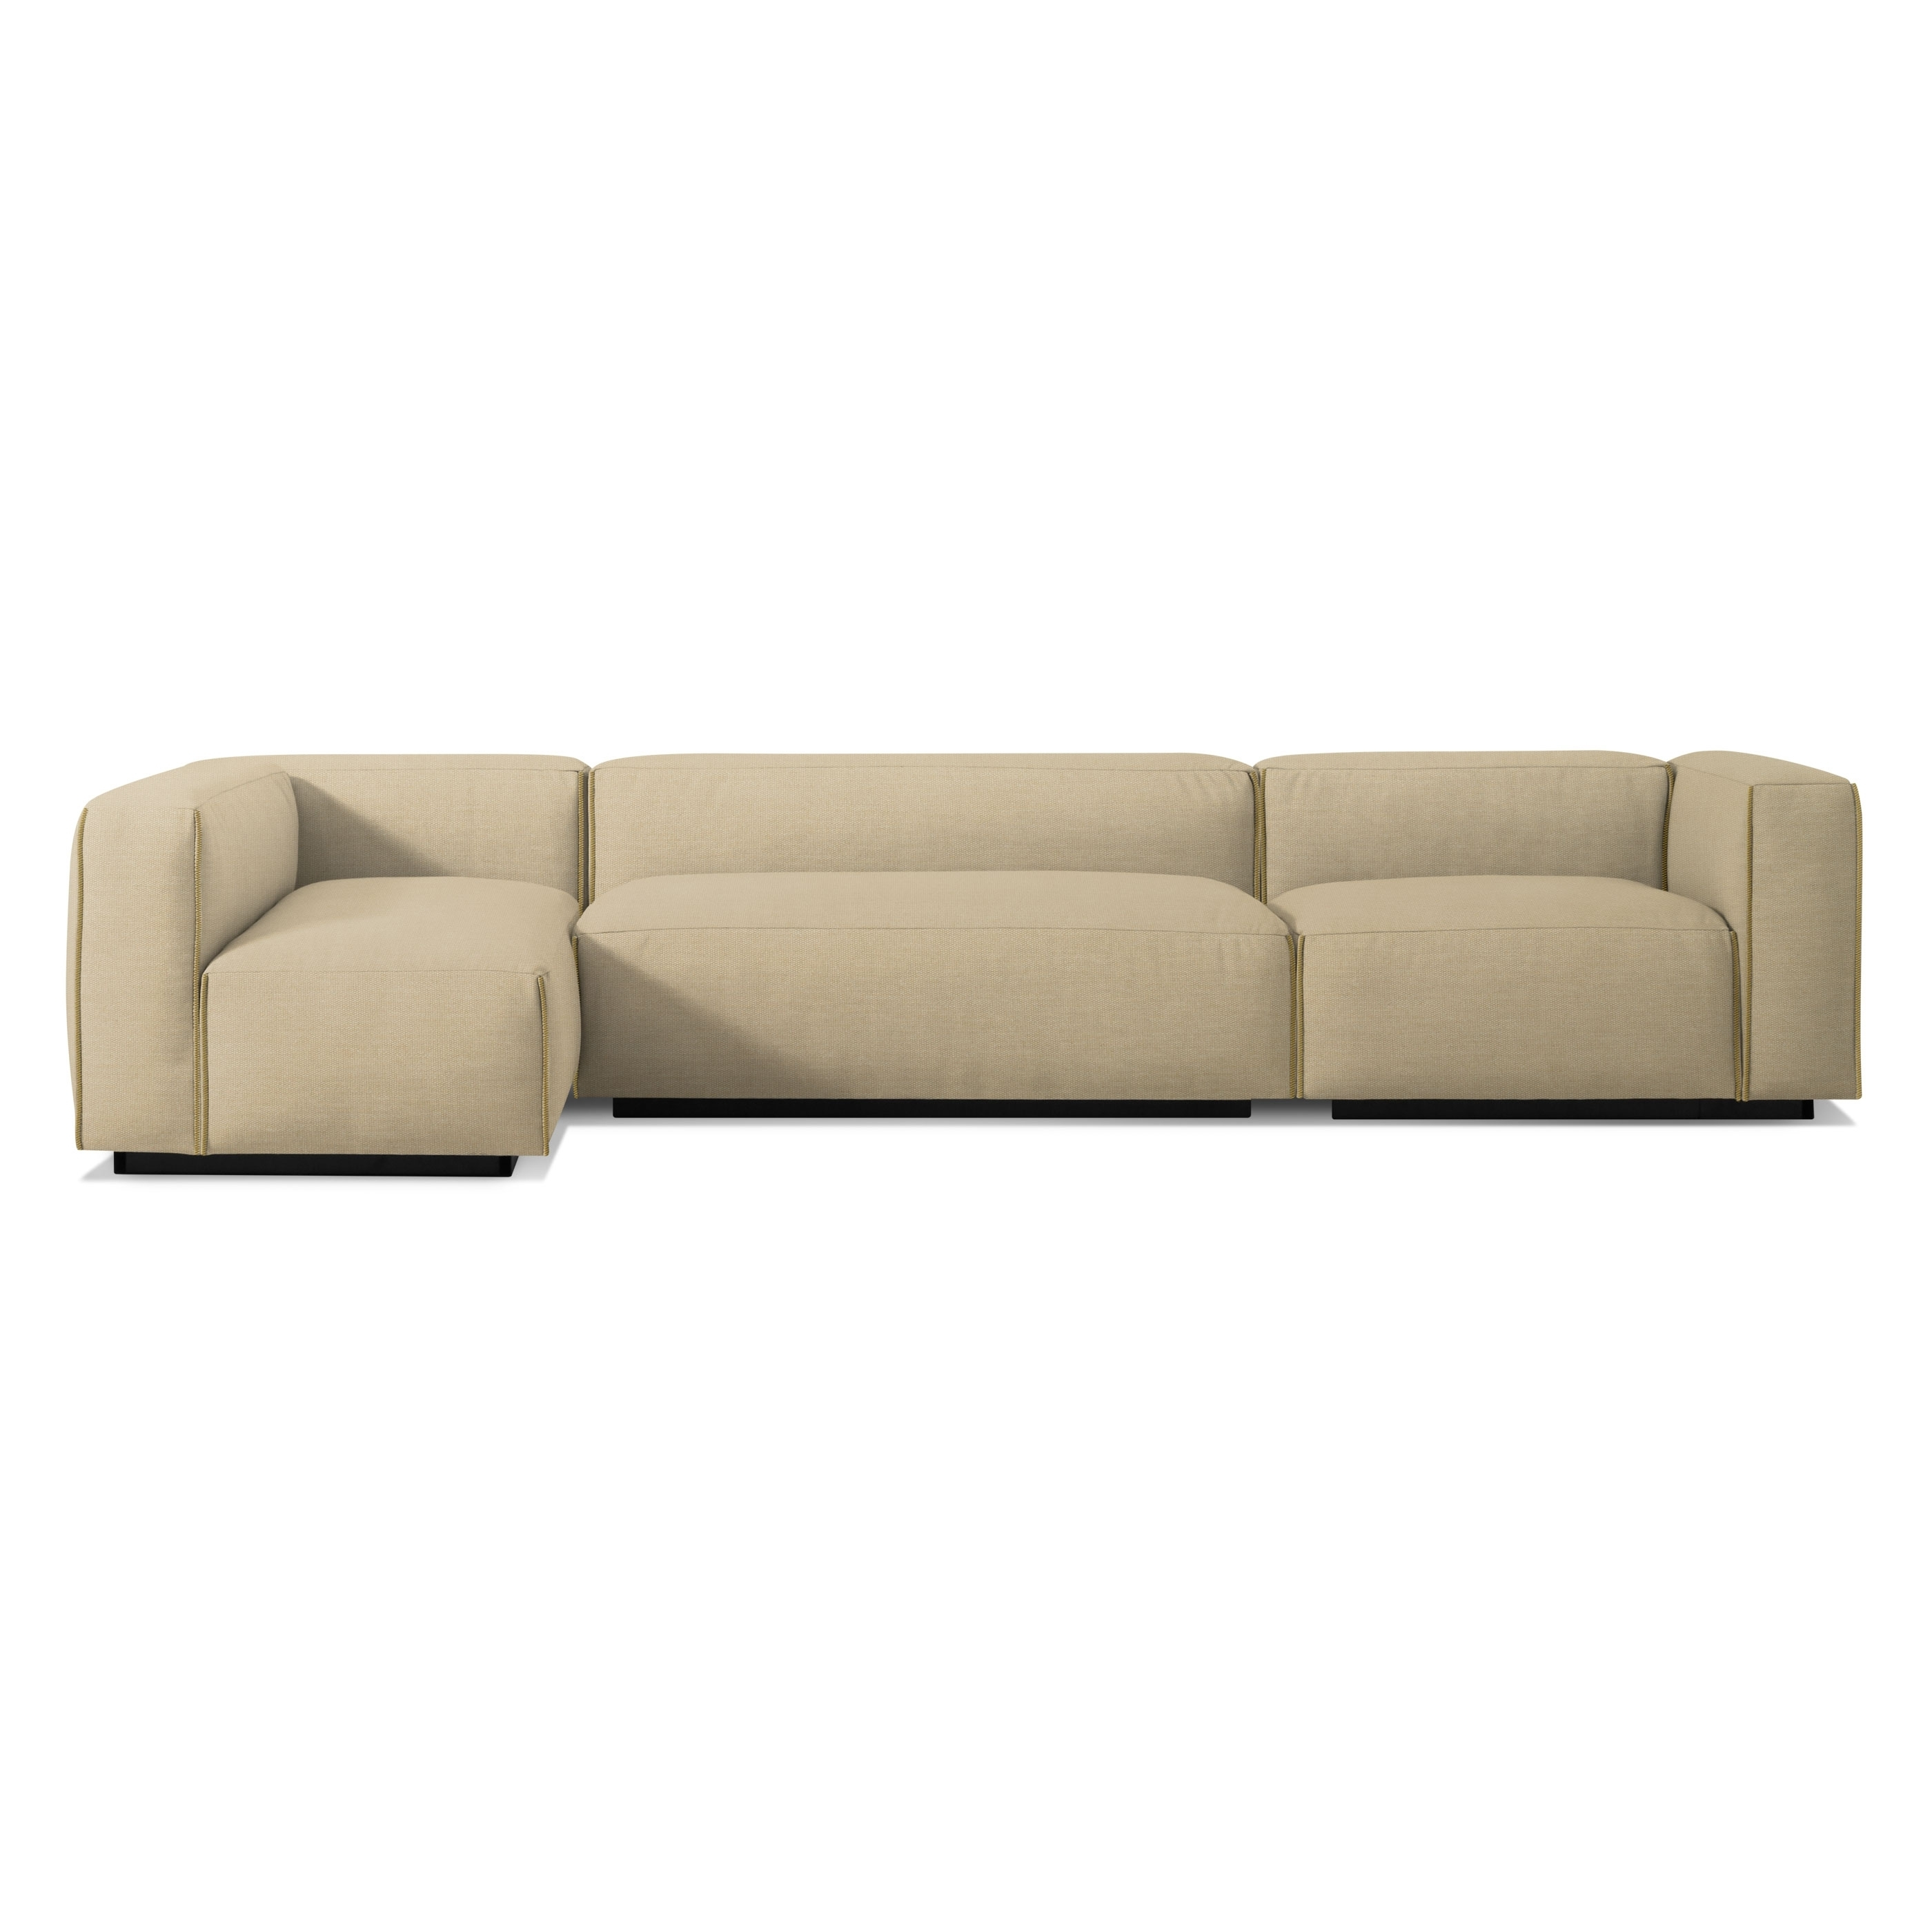 Most Up To Date Nova Scotia Sectional Sofas With Regard To Cleon Medium+ Sectional Sofa – Modern Sofas And Sectionals (View 7 of 15)